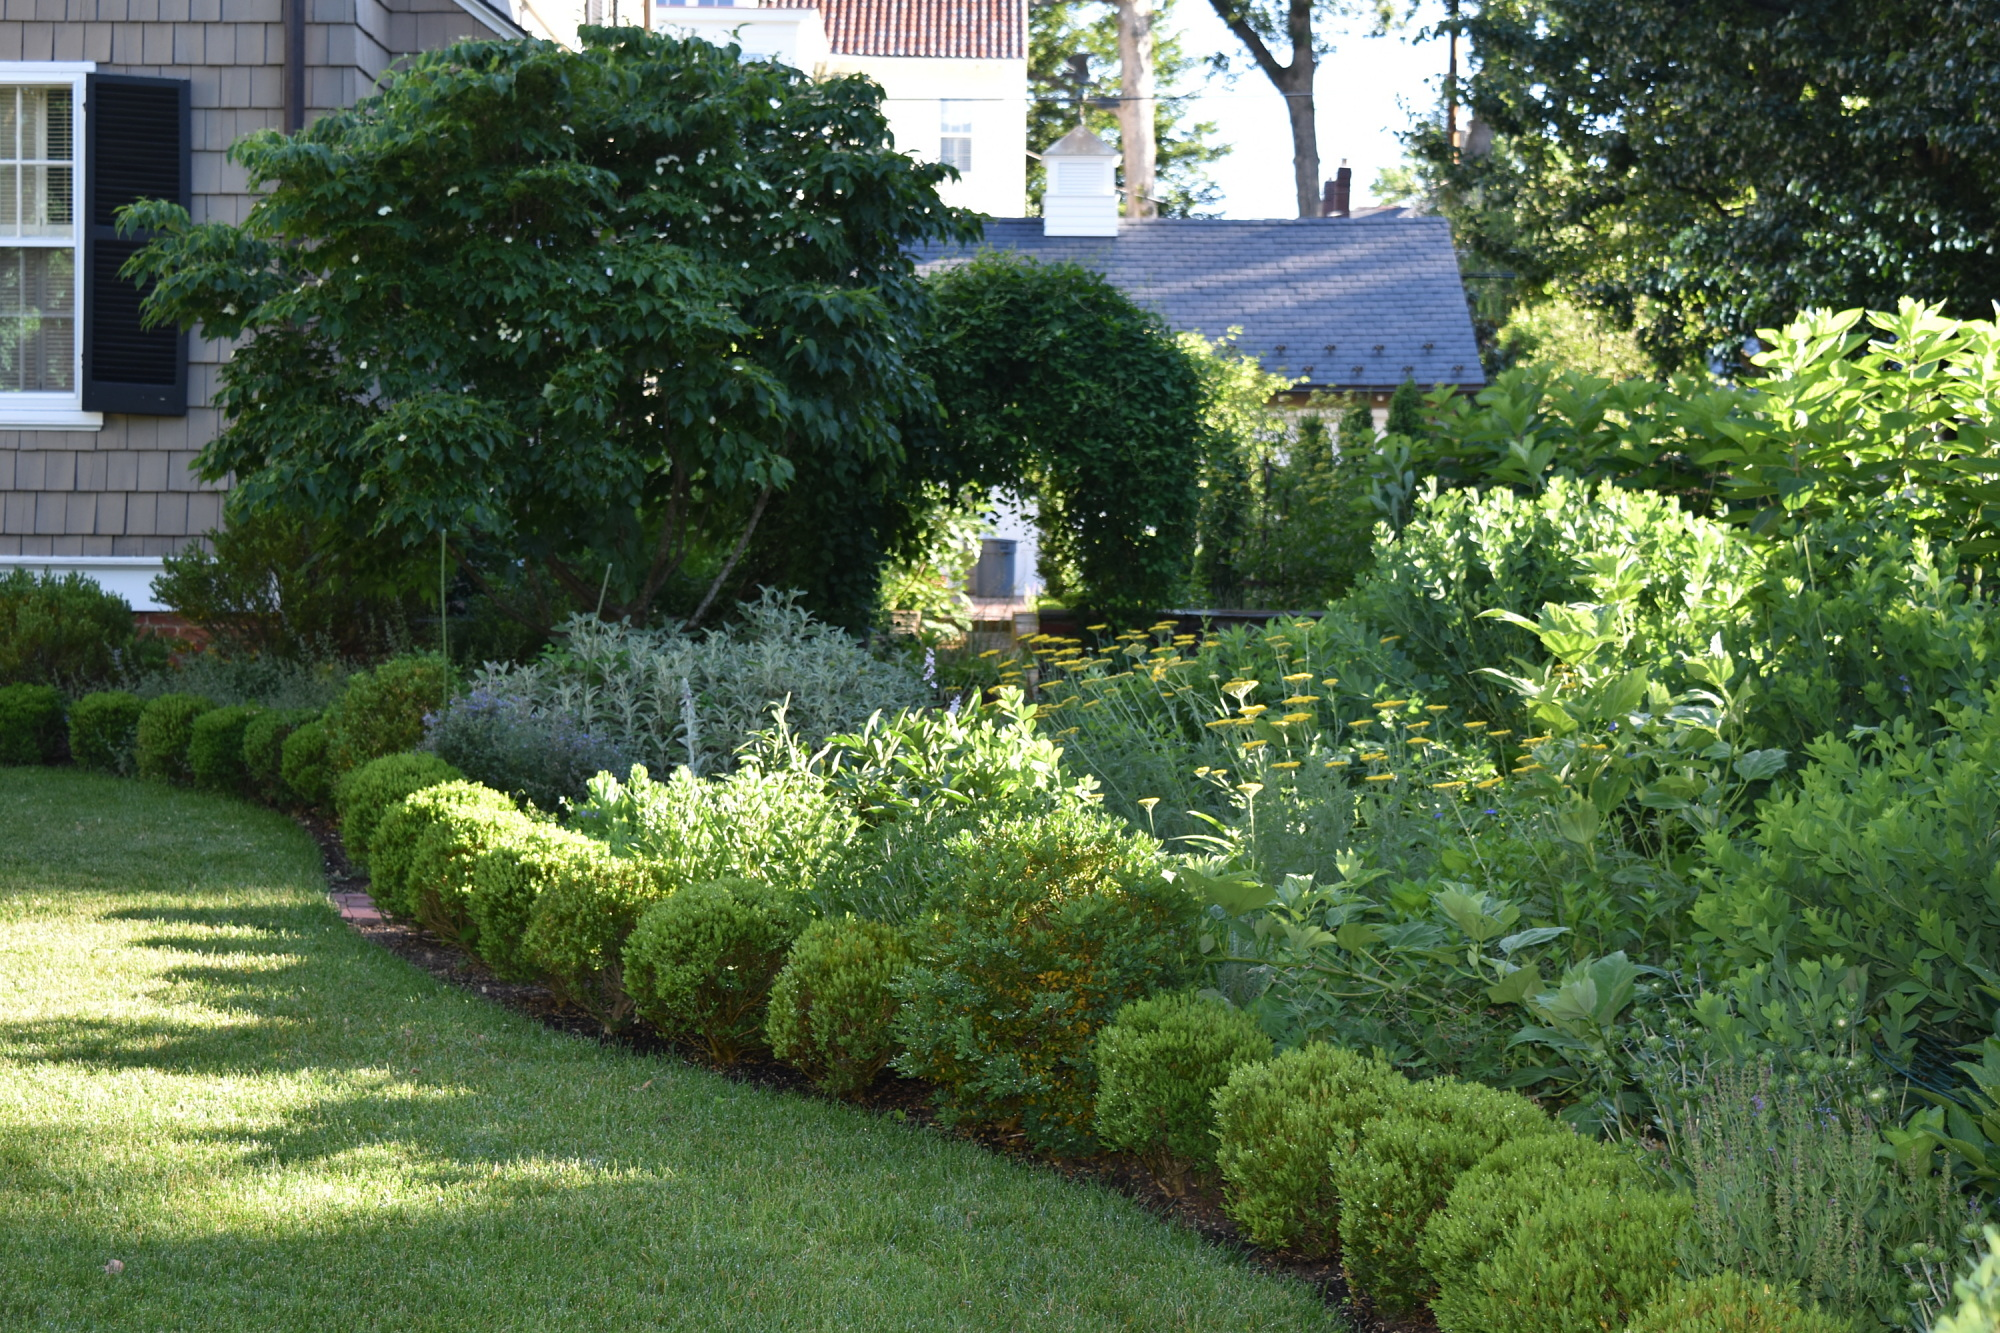 [Charles F.R. Ogilby House]: The border in summer with the clematis covered arch.